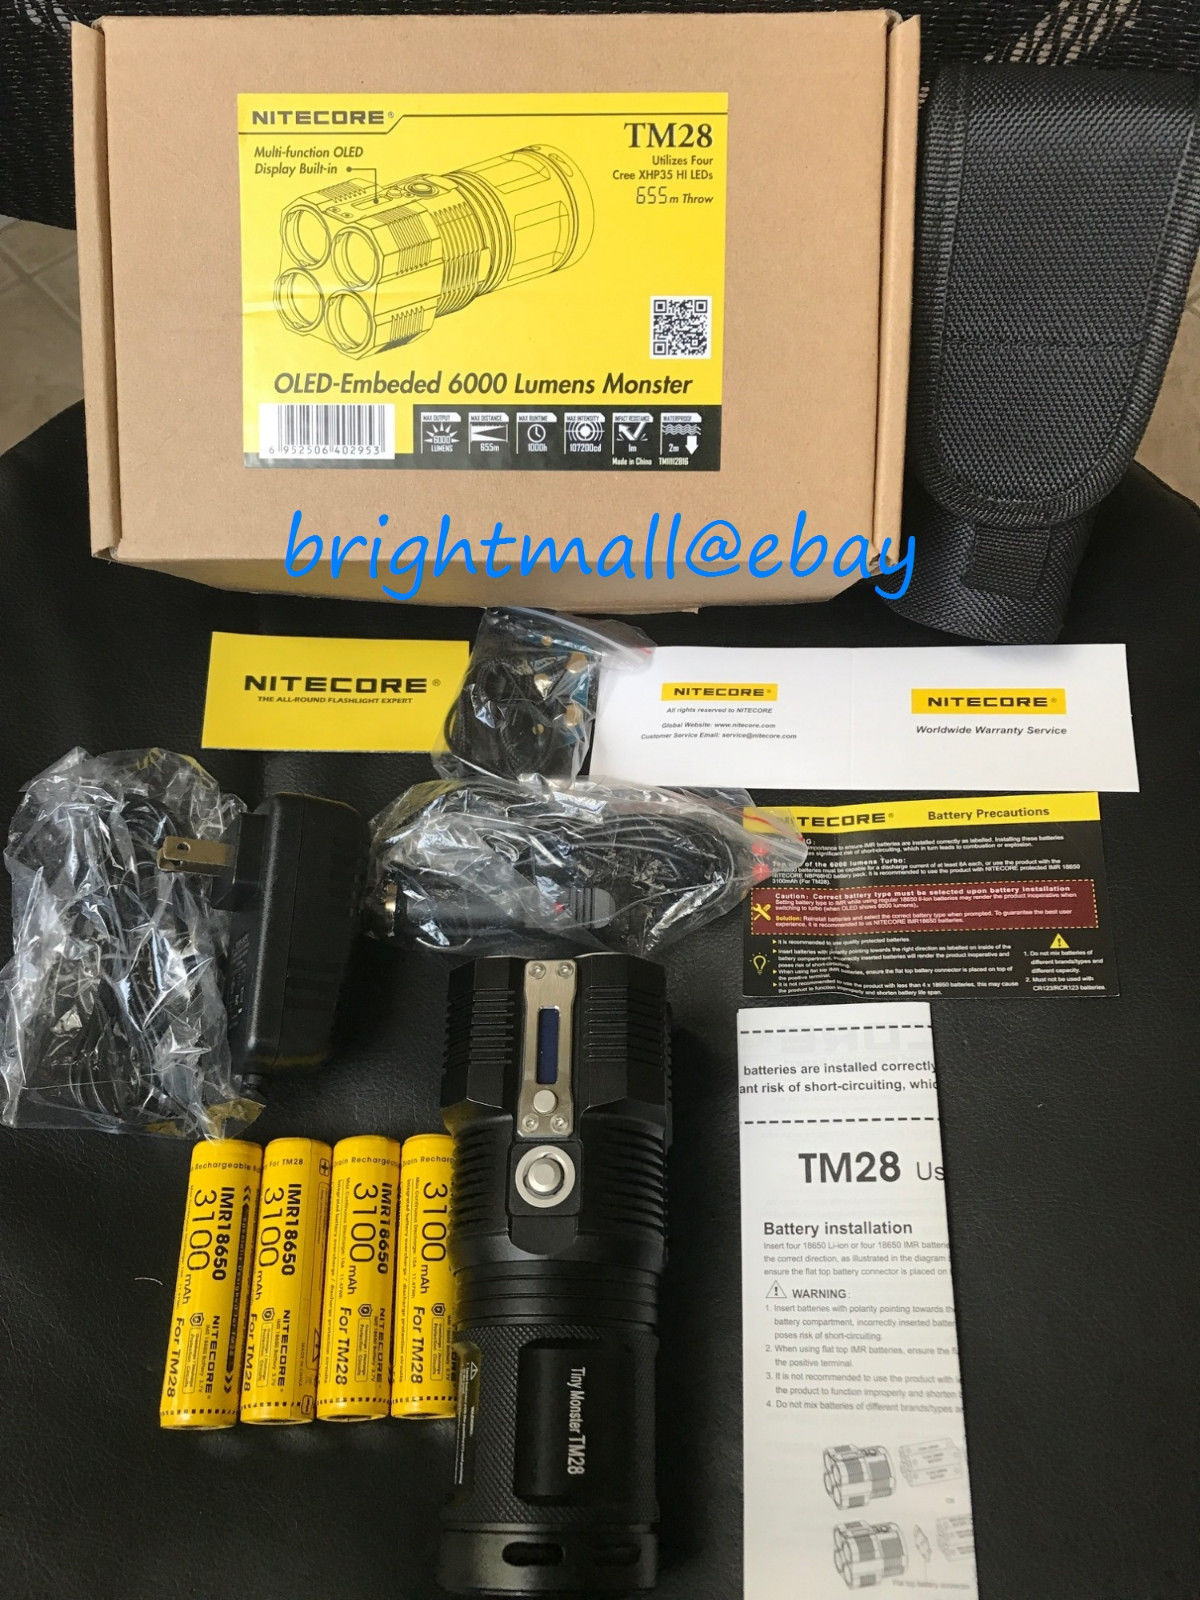 NEW Nitecore TM28 6000 Lumen LED Flashlight With 4 3100MAH IMR BATTERY TM26 Upgrade